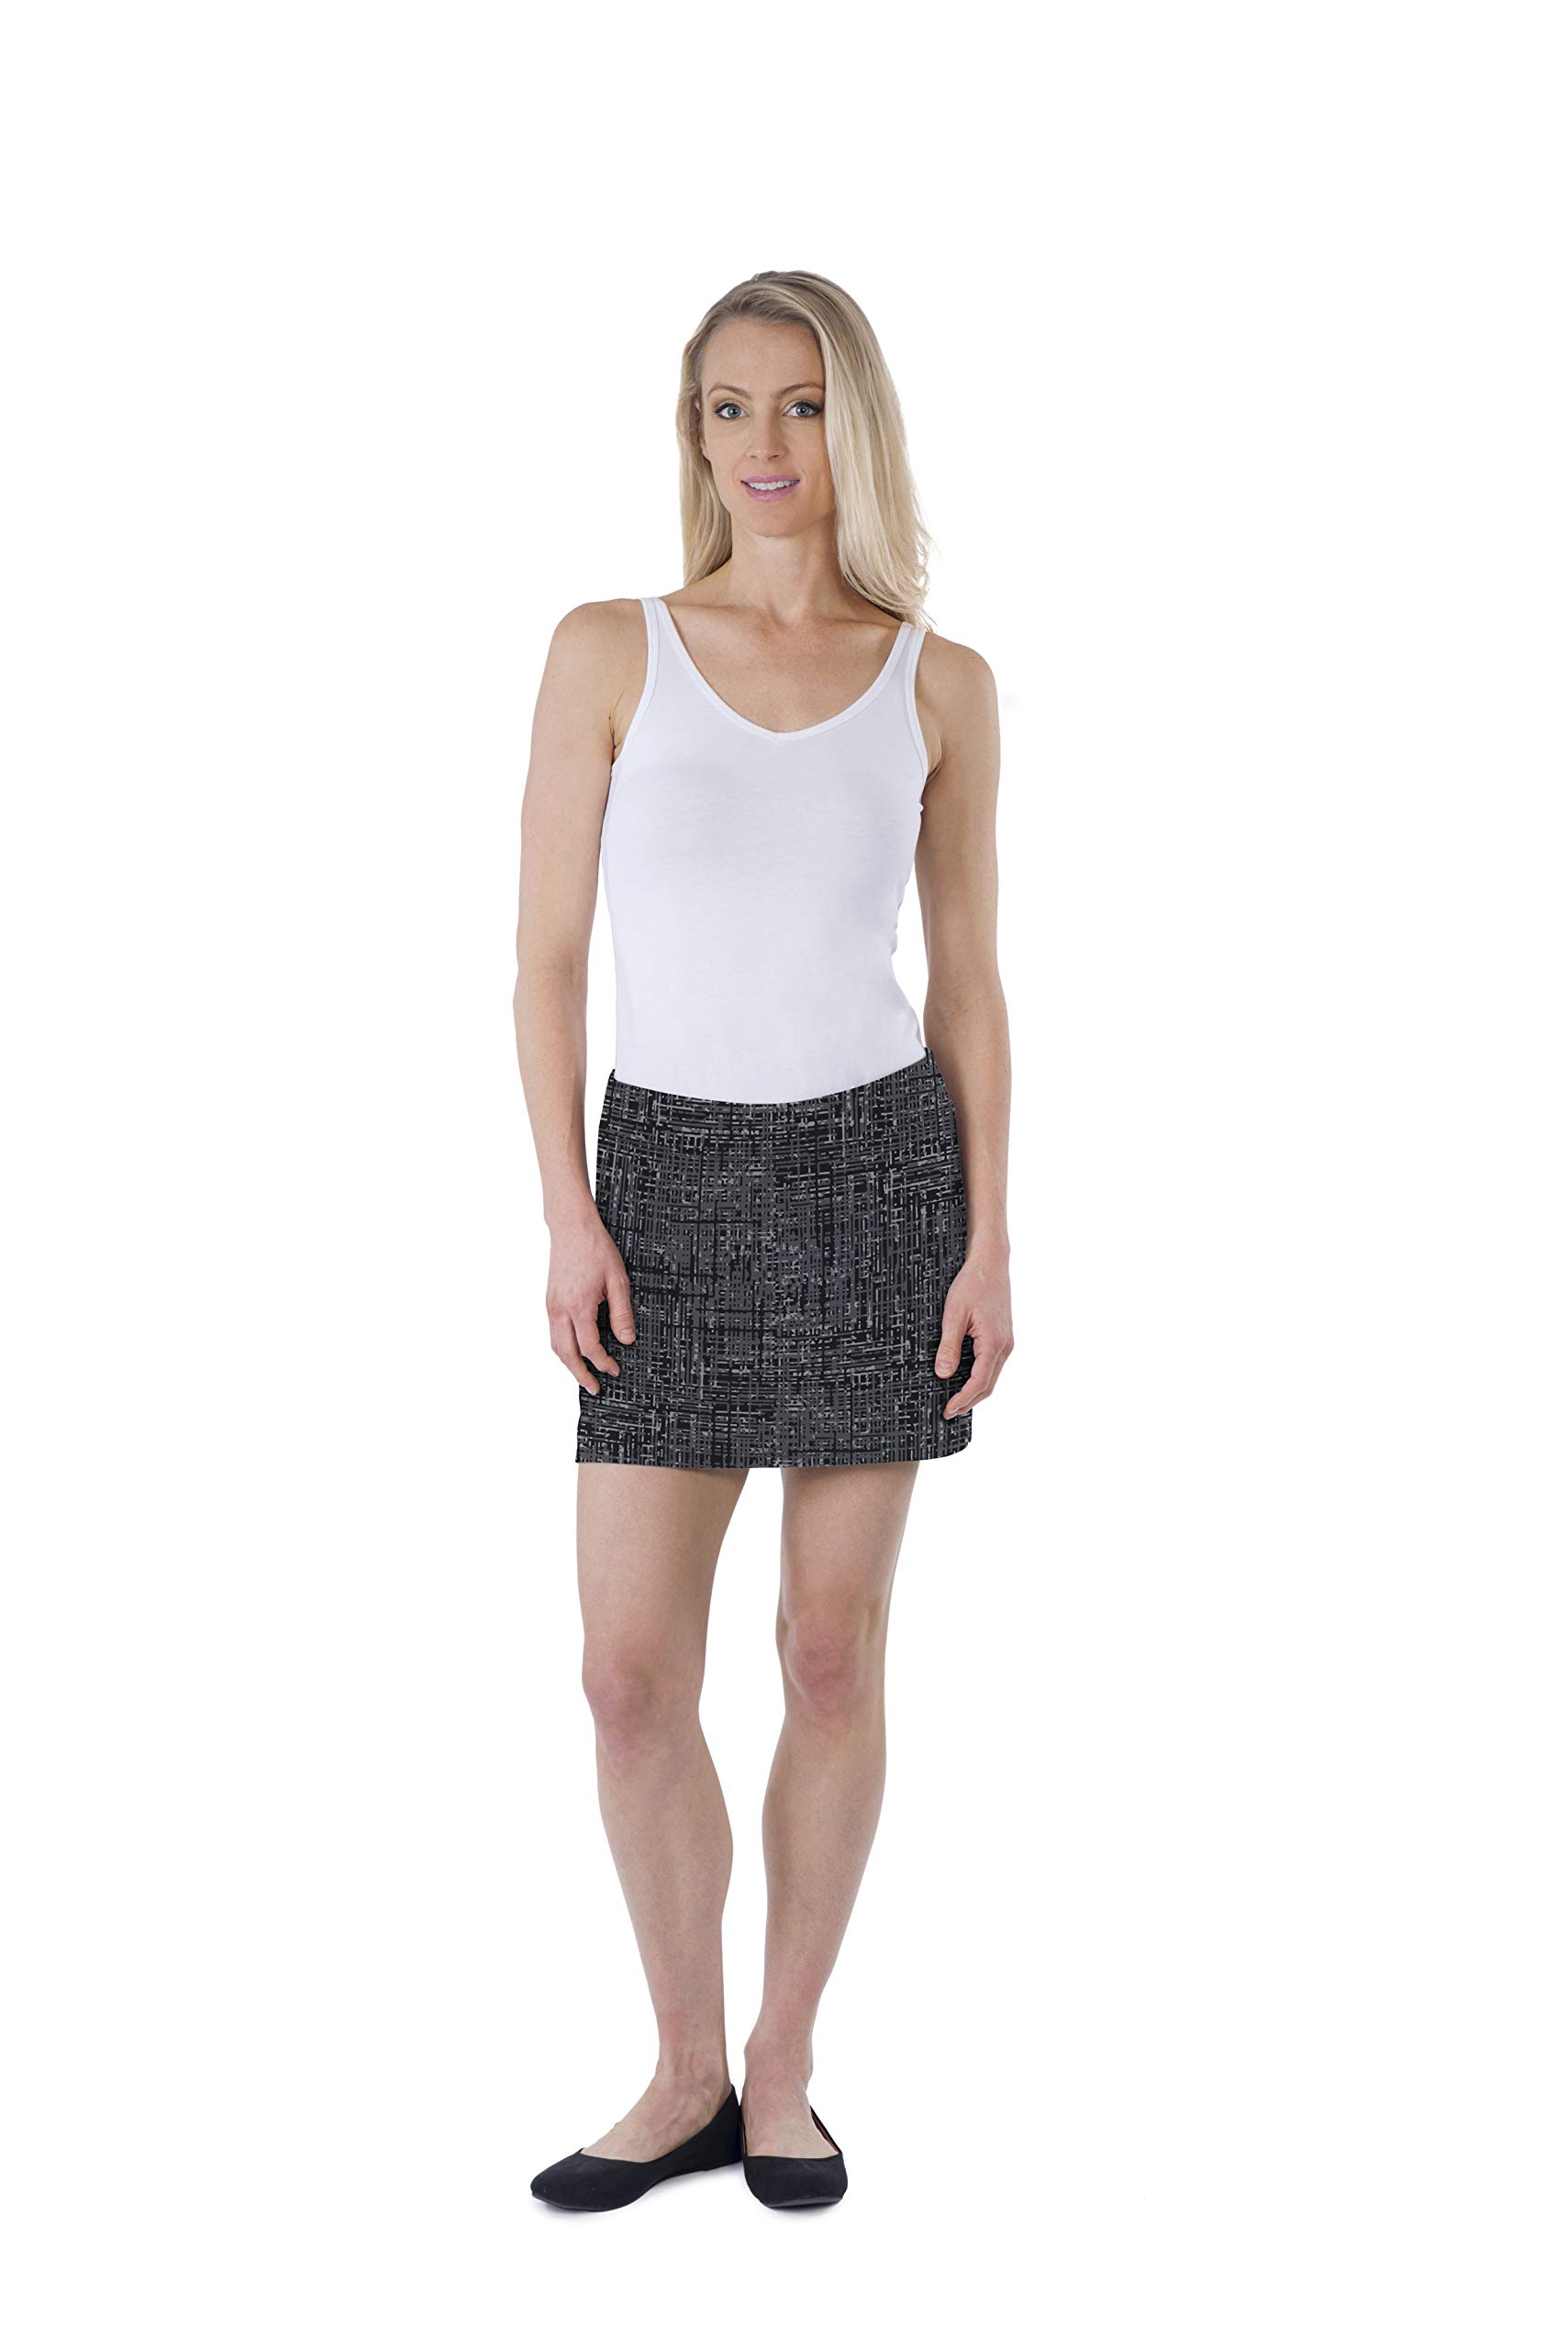 Colorado Clothing Women's Everyday Skort (Tweed Charcoal, L) by Colorado Clothing